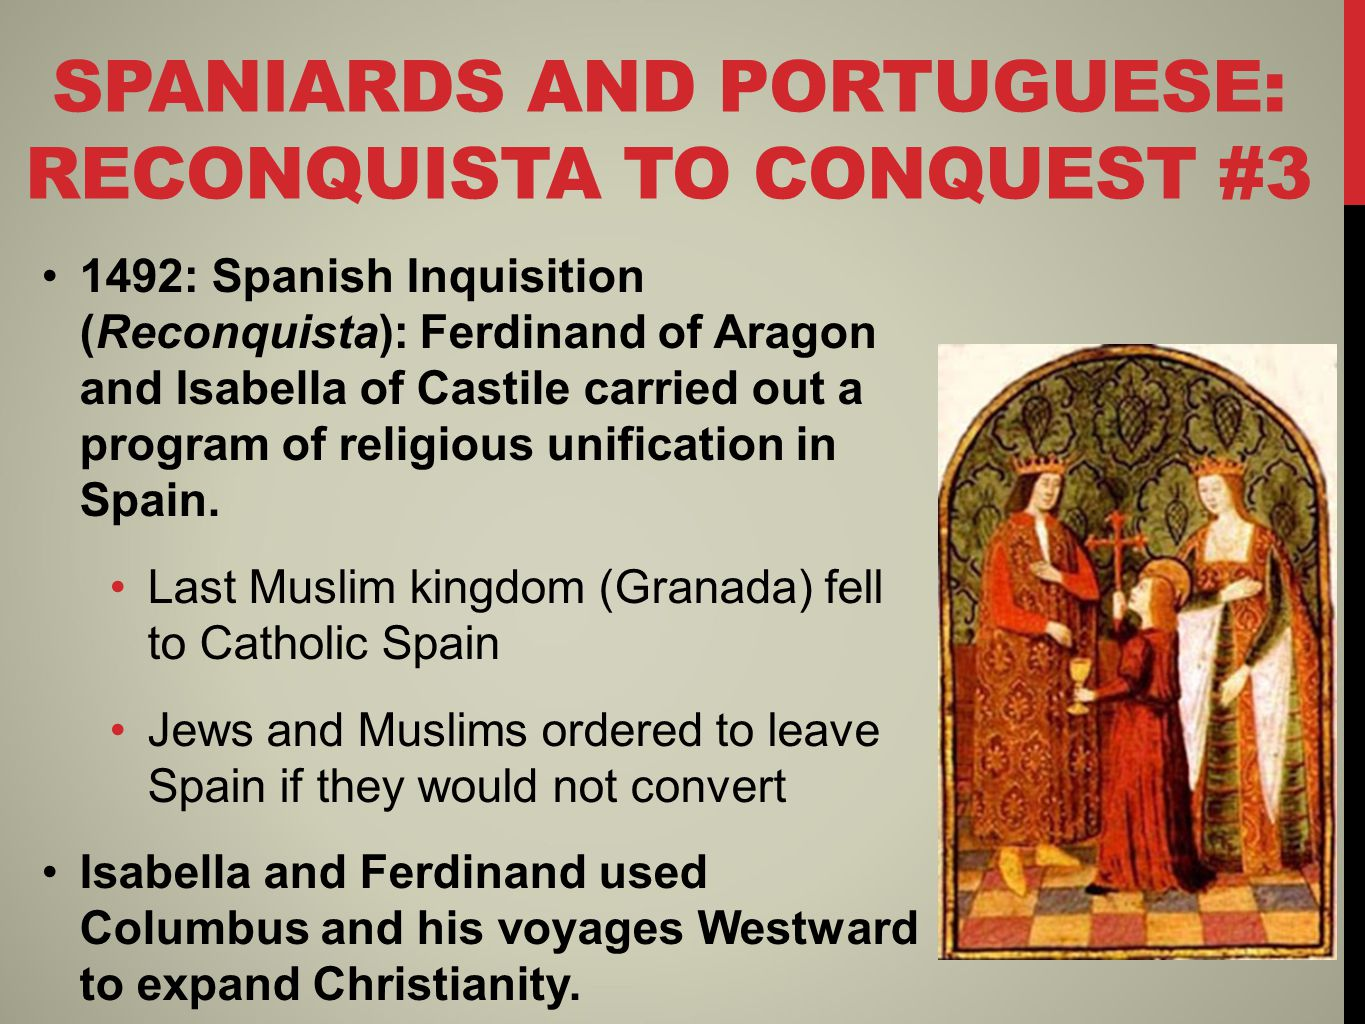 SPANIARDS AND PORTUGUESE: RECONQUISTA TO CONQUEST #3 1492: Spanish Inquisition (Reconquista): Ferdinand of Aragon and Isabella of Castile carried out a program of religious unification in Spain.